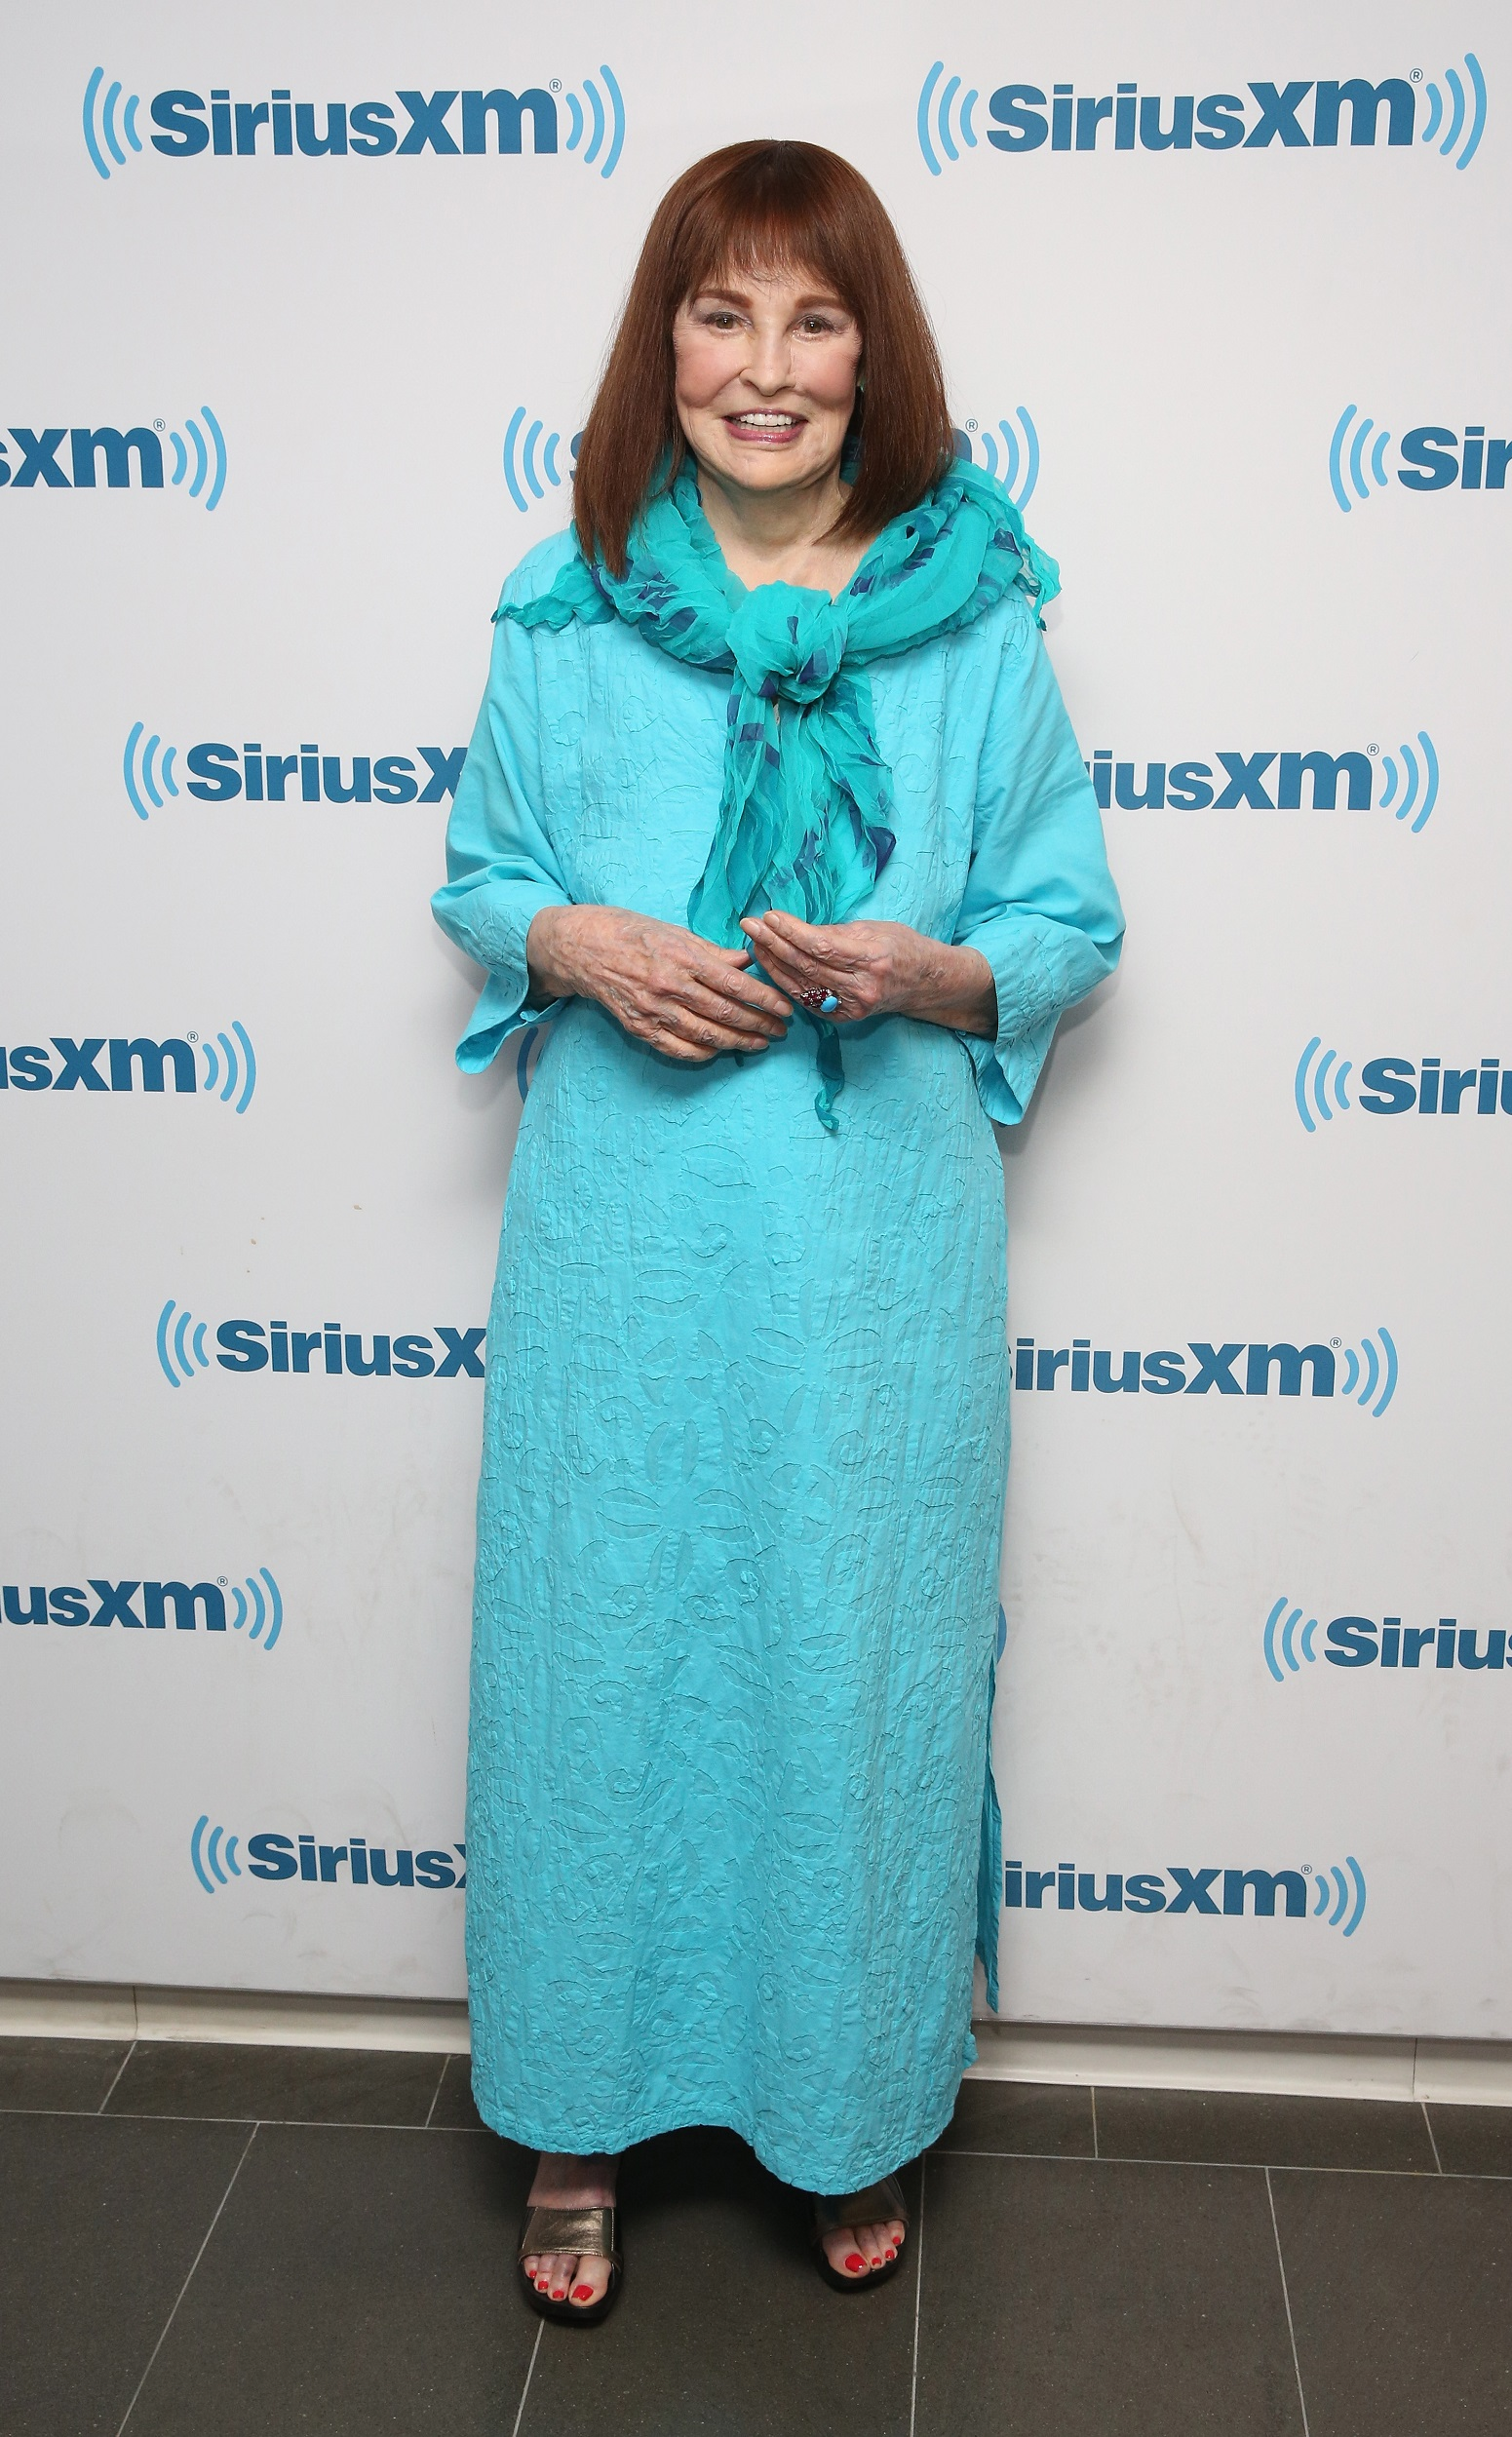 NEW YORK, NY - JULY 14:  Gloria Vanderbilt attends SiriusXM's 'Town Hall' With Gloria Vanderbilt at SiriusXM Studios on July 14, 2016 in New York City. Town Hall To Air On Radio Andy.  (Photo by Robin Marchant/Getty Images for SiriusXM)